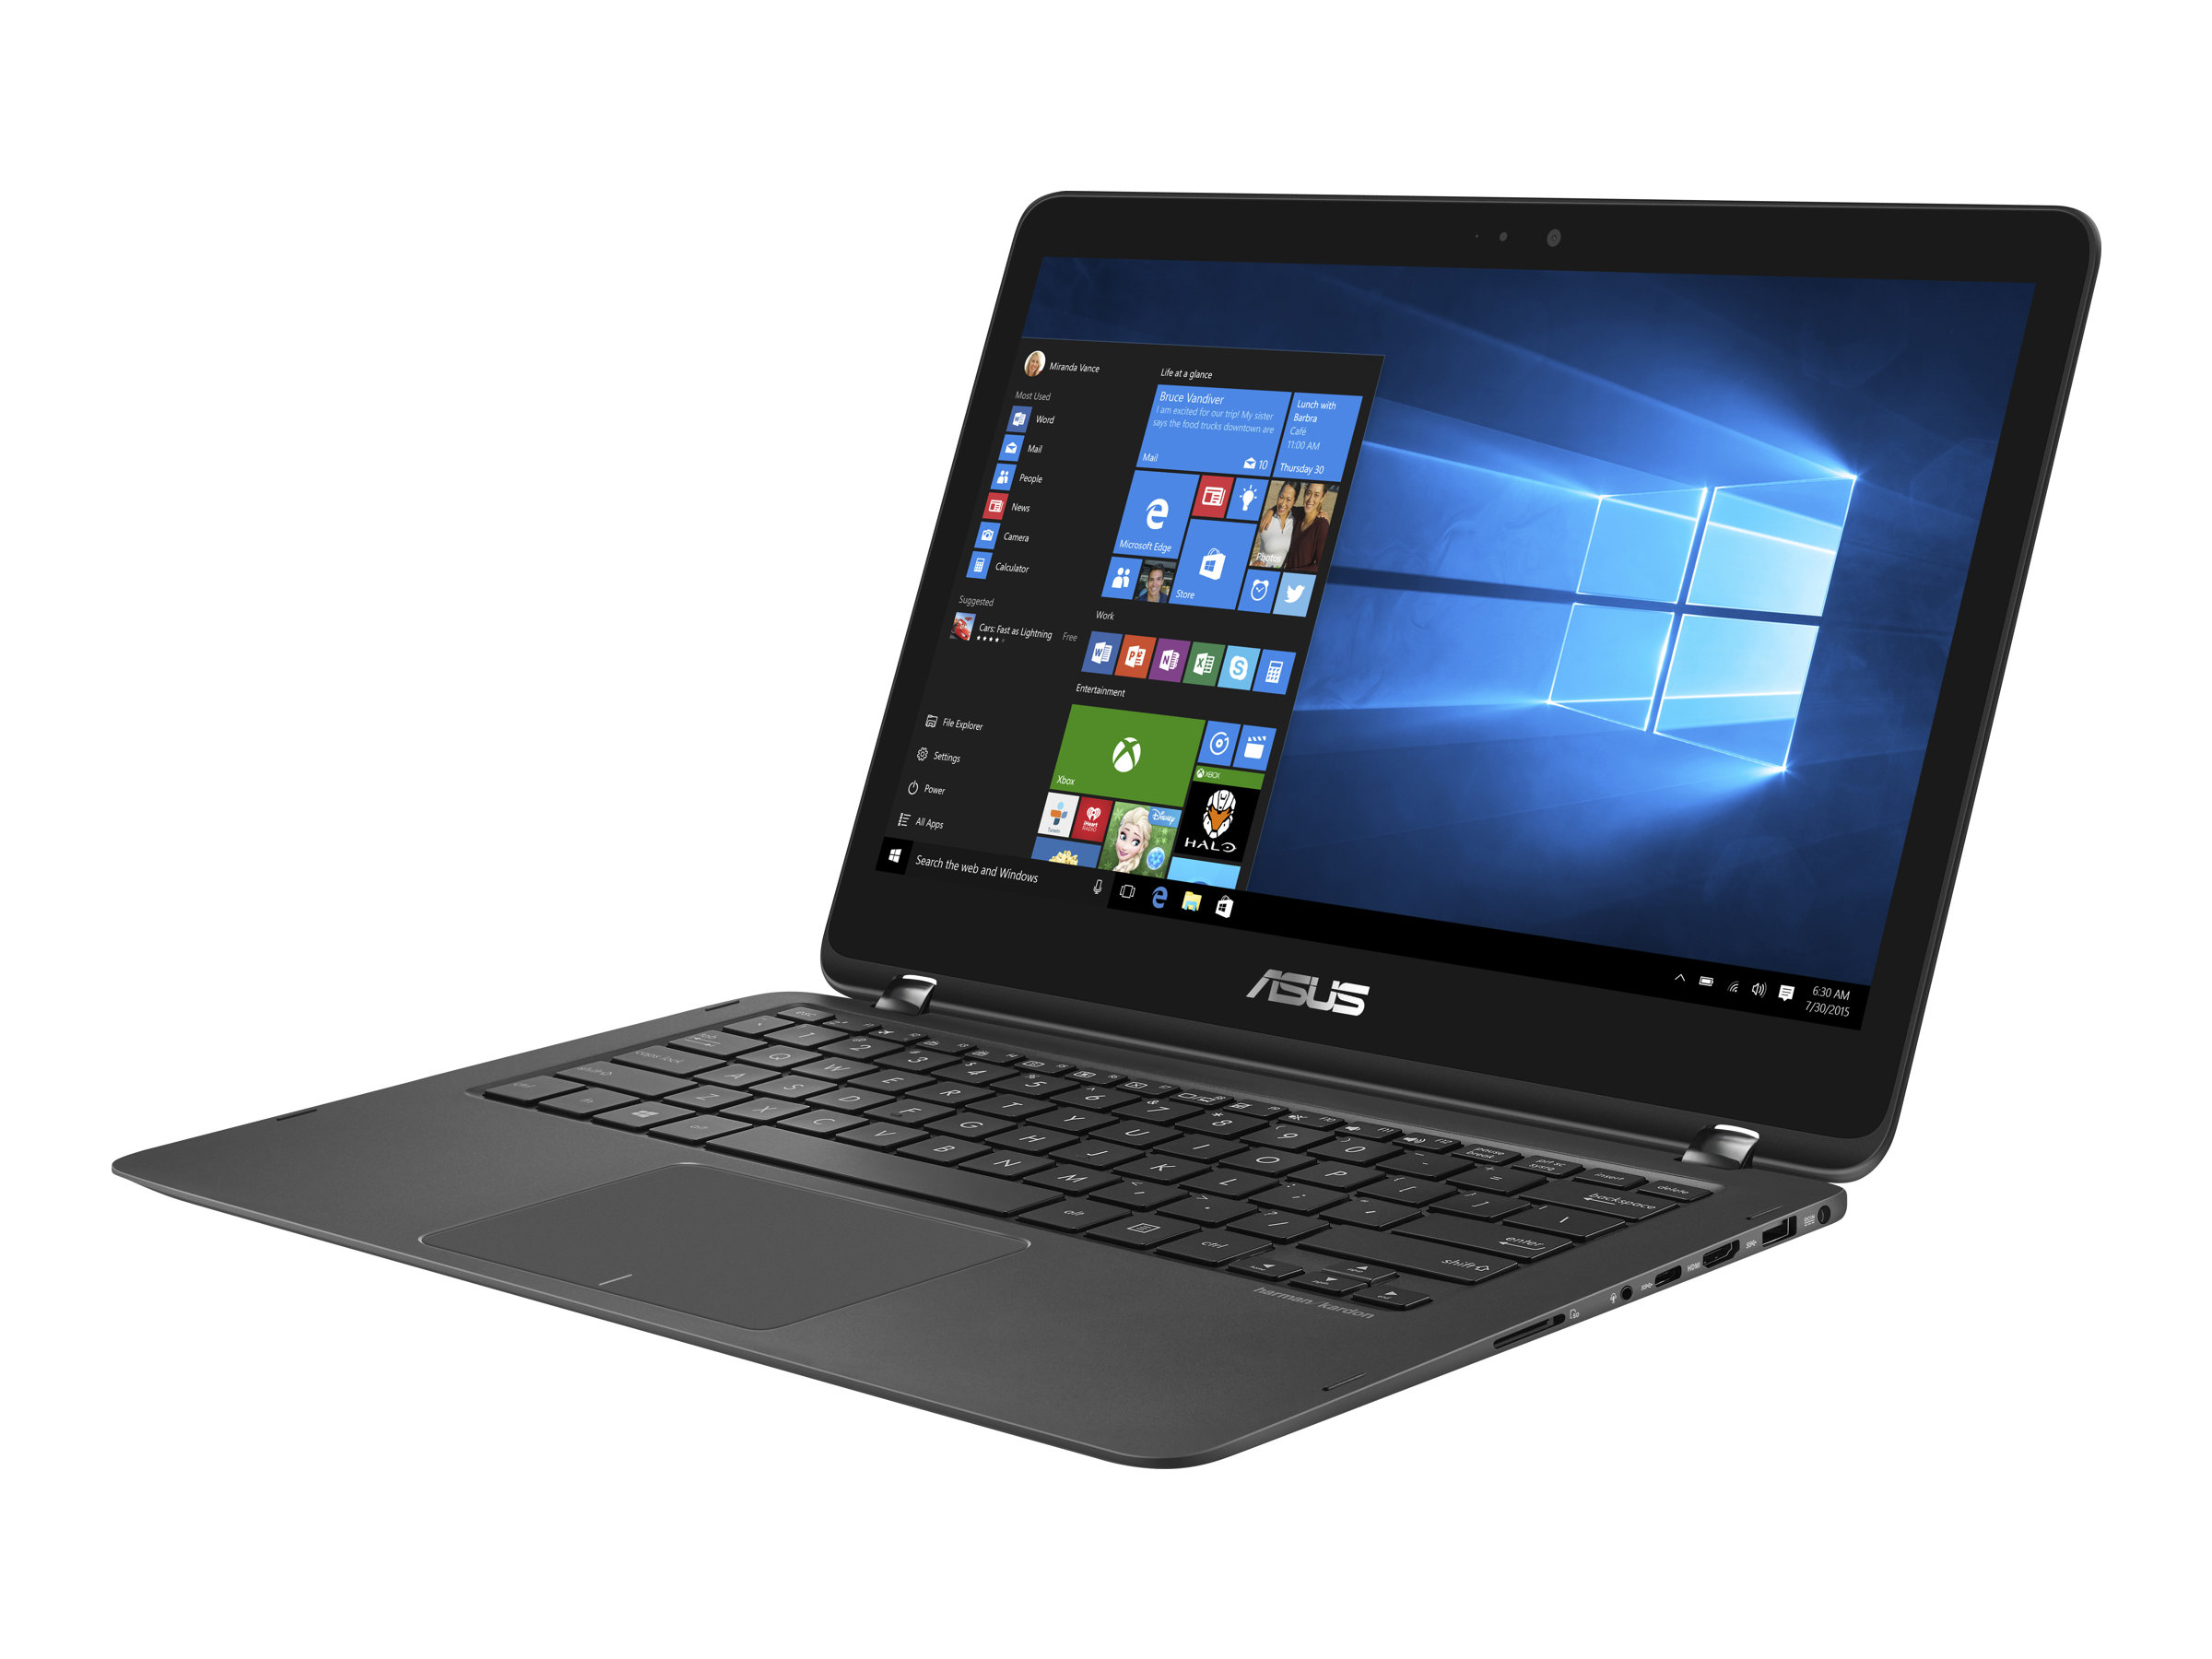 ASUS ZenBook Flip UX360UAK BB415T - Flip-Design - Core i5 7200U / 2.5 GHz - Win 10 Home 64-Bit - 8 GB RAM - 256 GB SSD